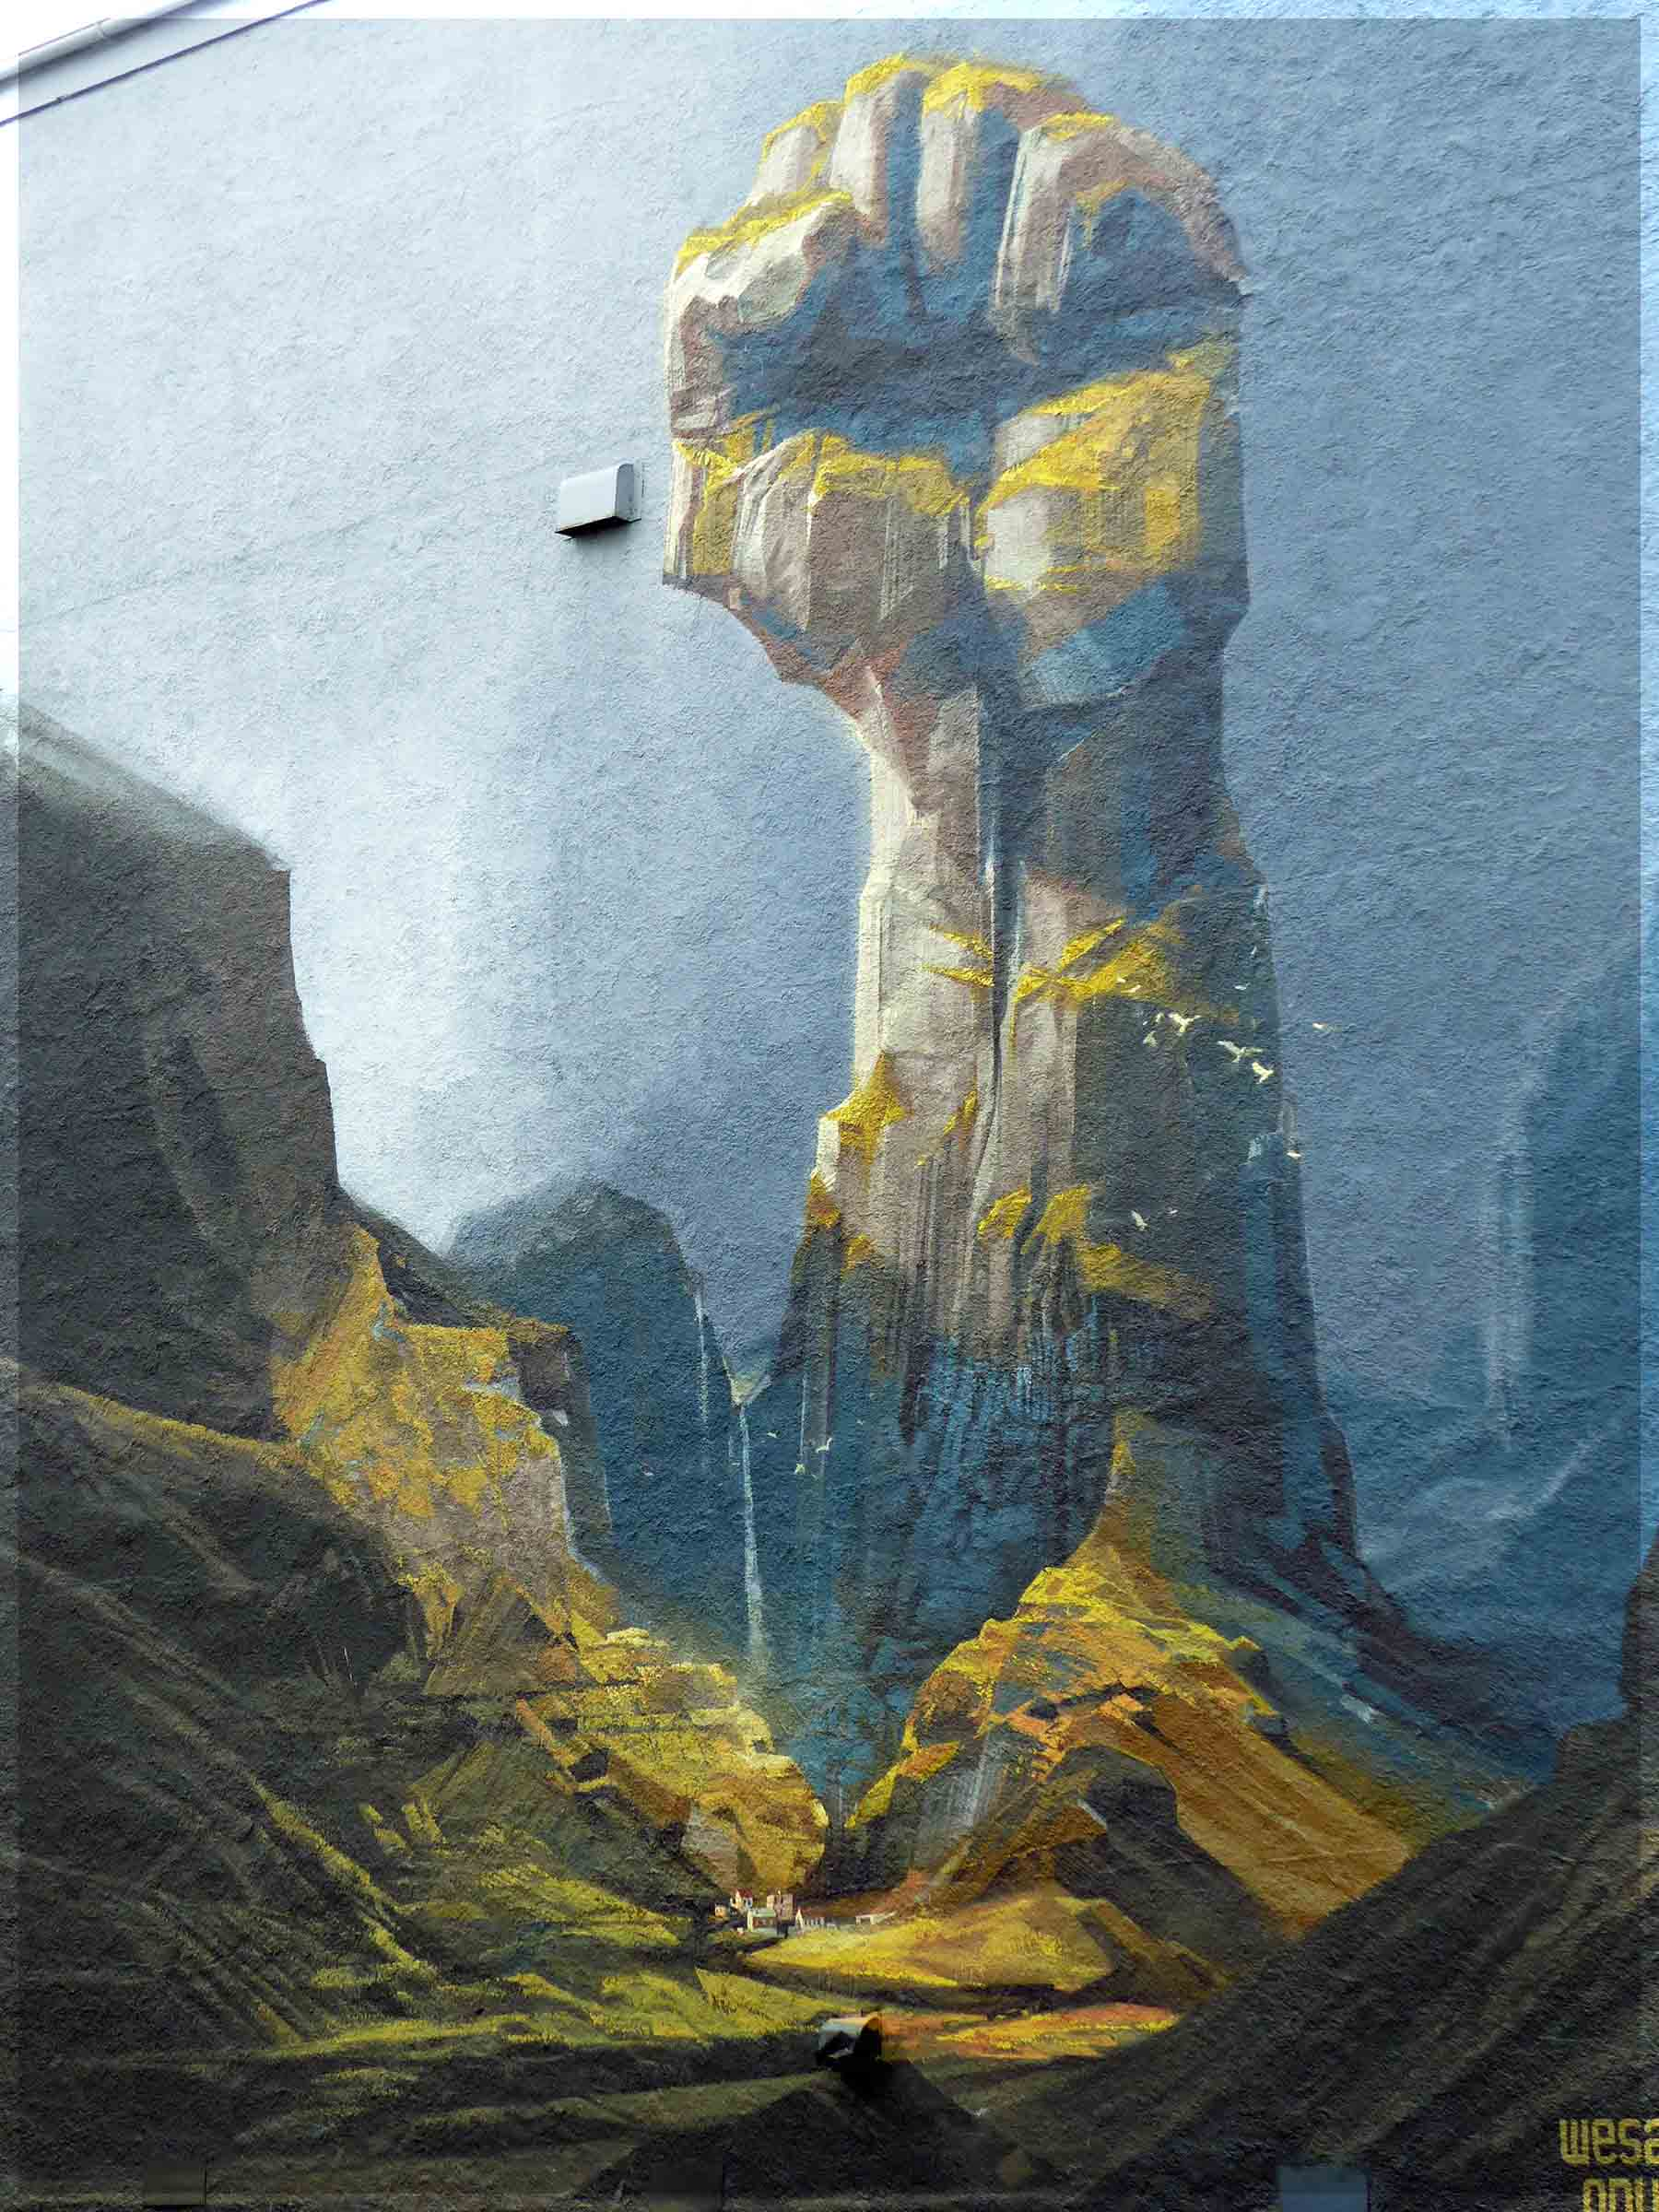 Mural of giant fist emerging from mountainous landscape